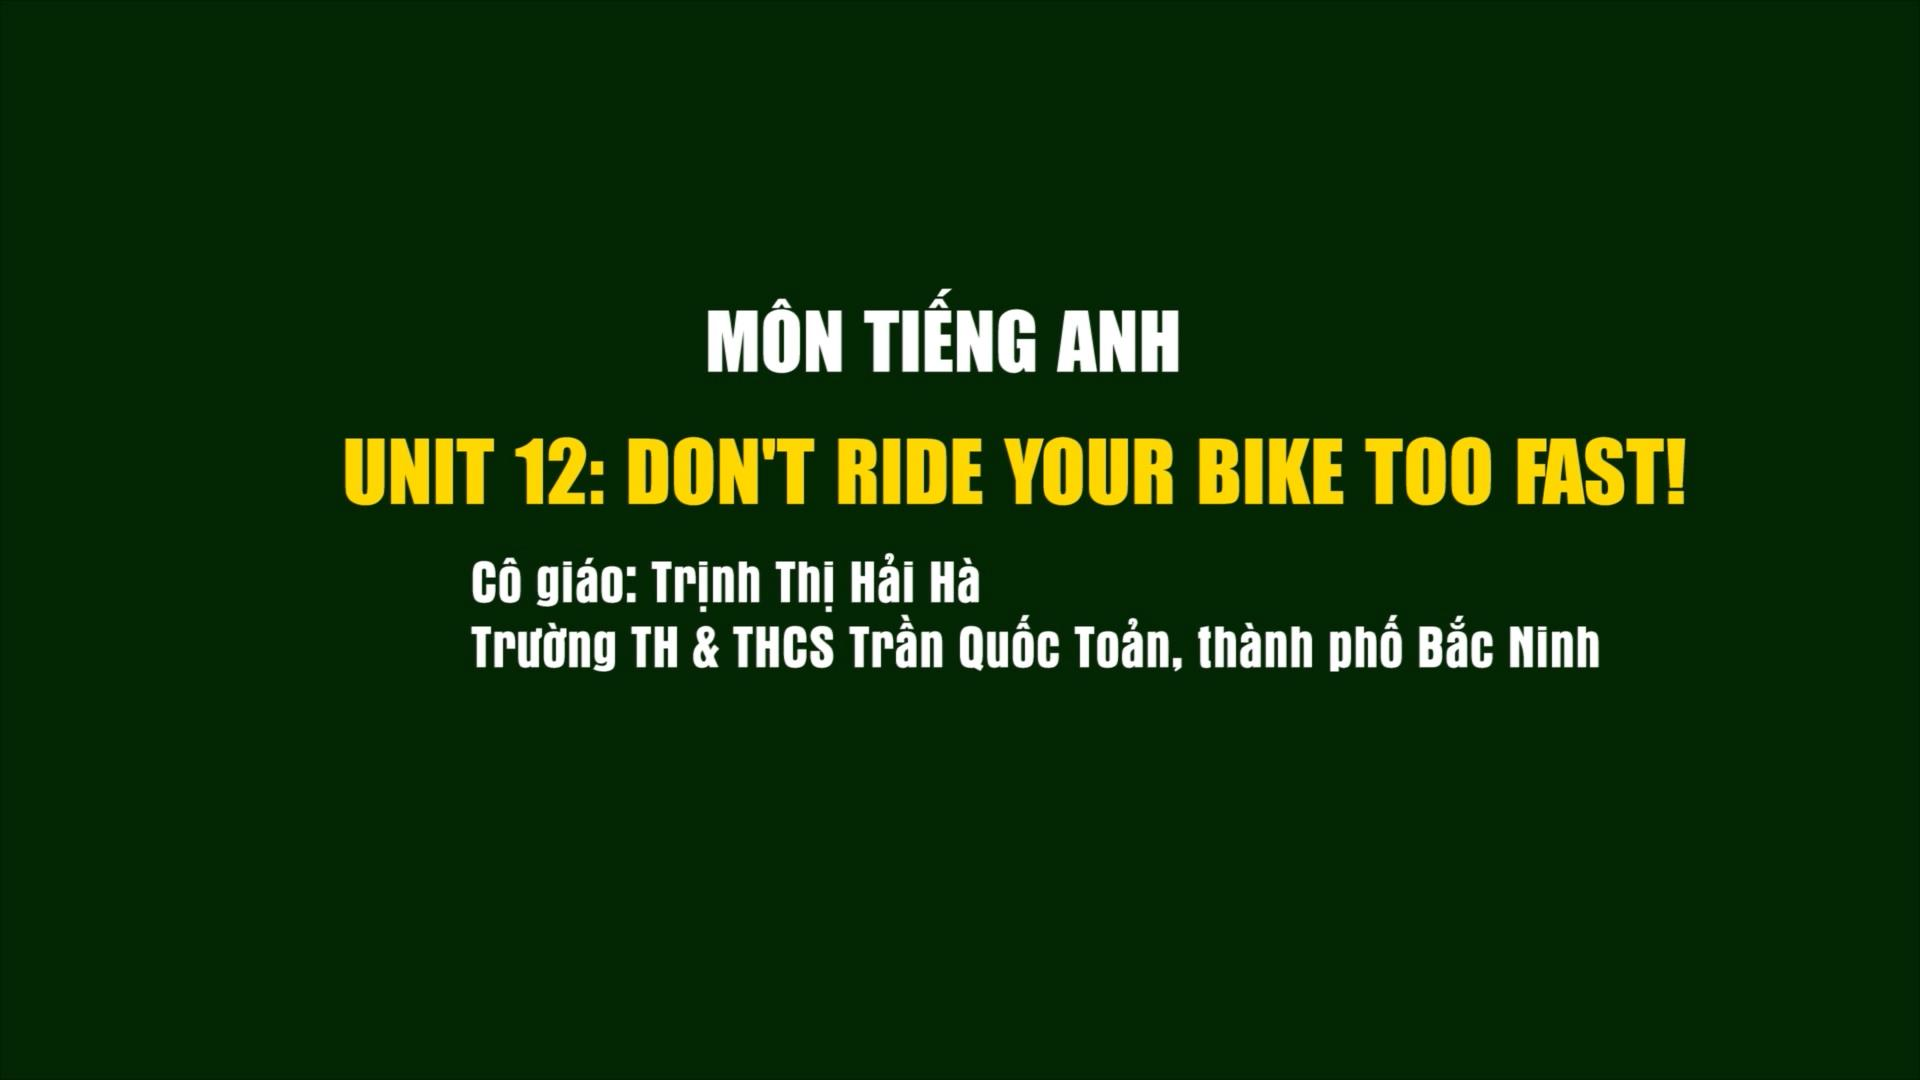 Tiếng anh lớp 5: Unit 12; Don't ride your bike too fast!